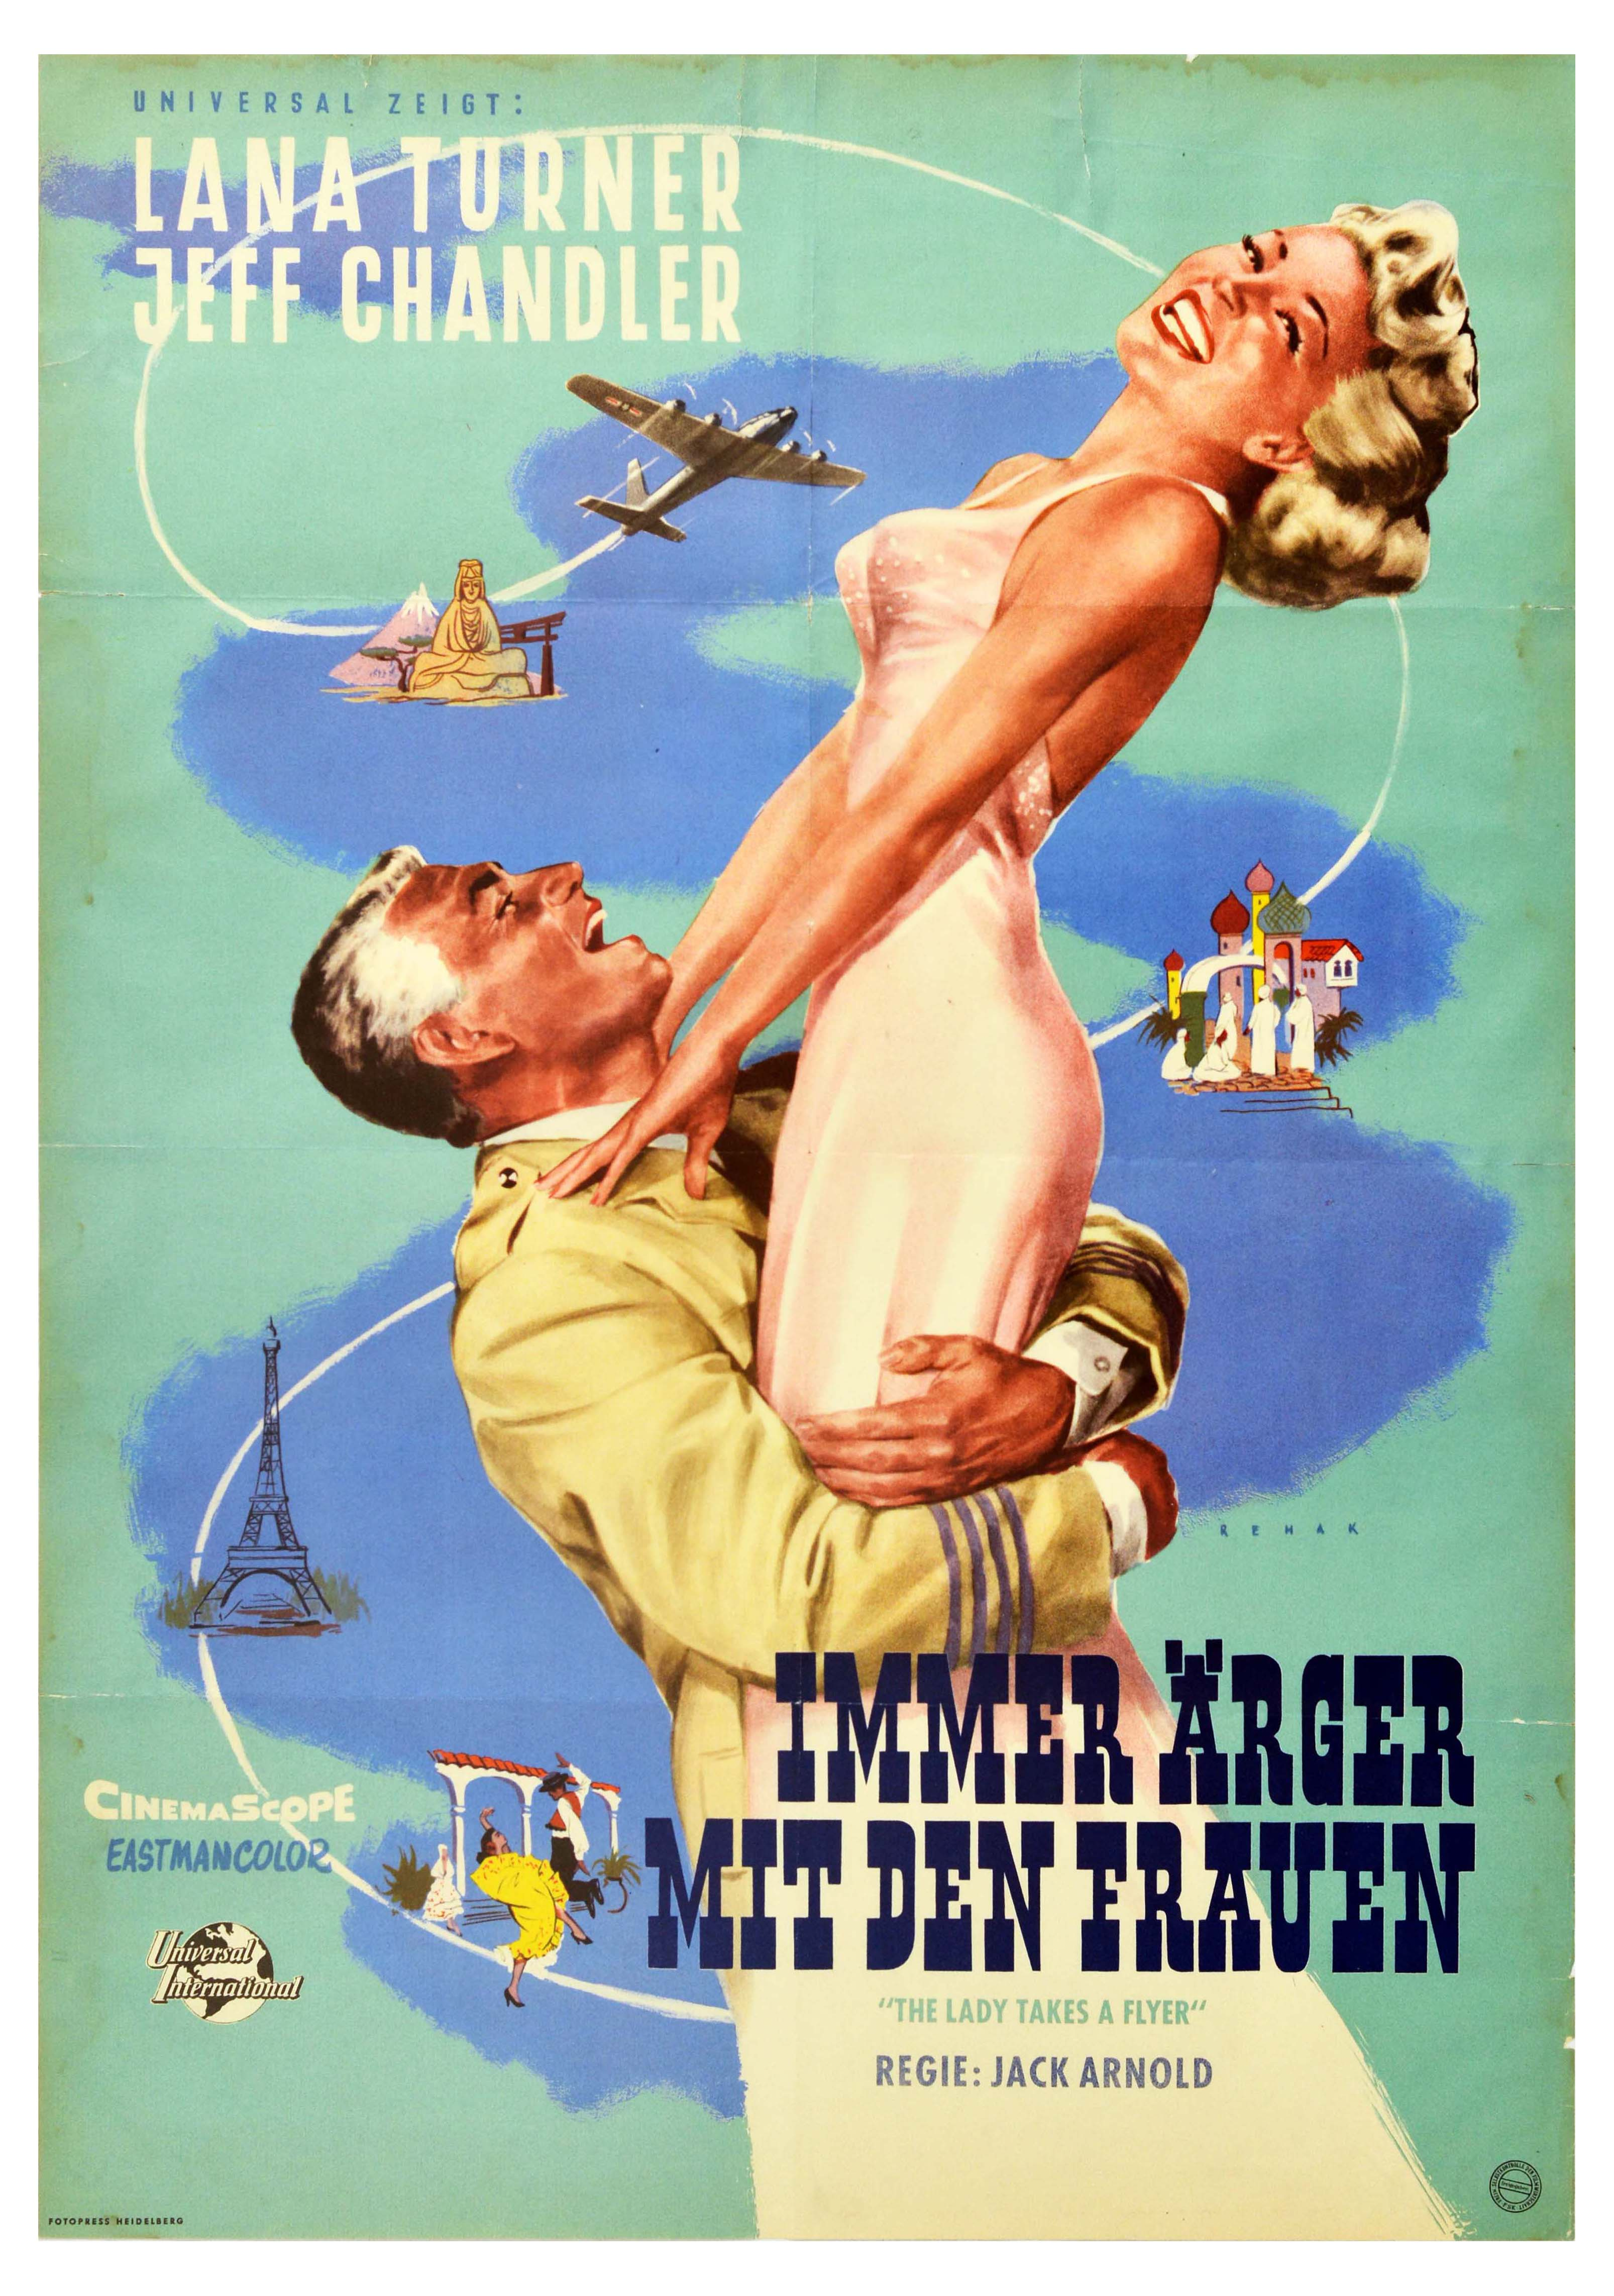 Movie Poster The Lady Takes a Flyer Lana Turner Paris